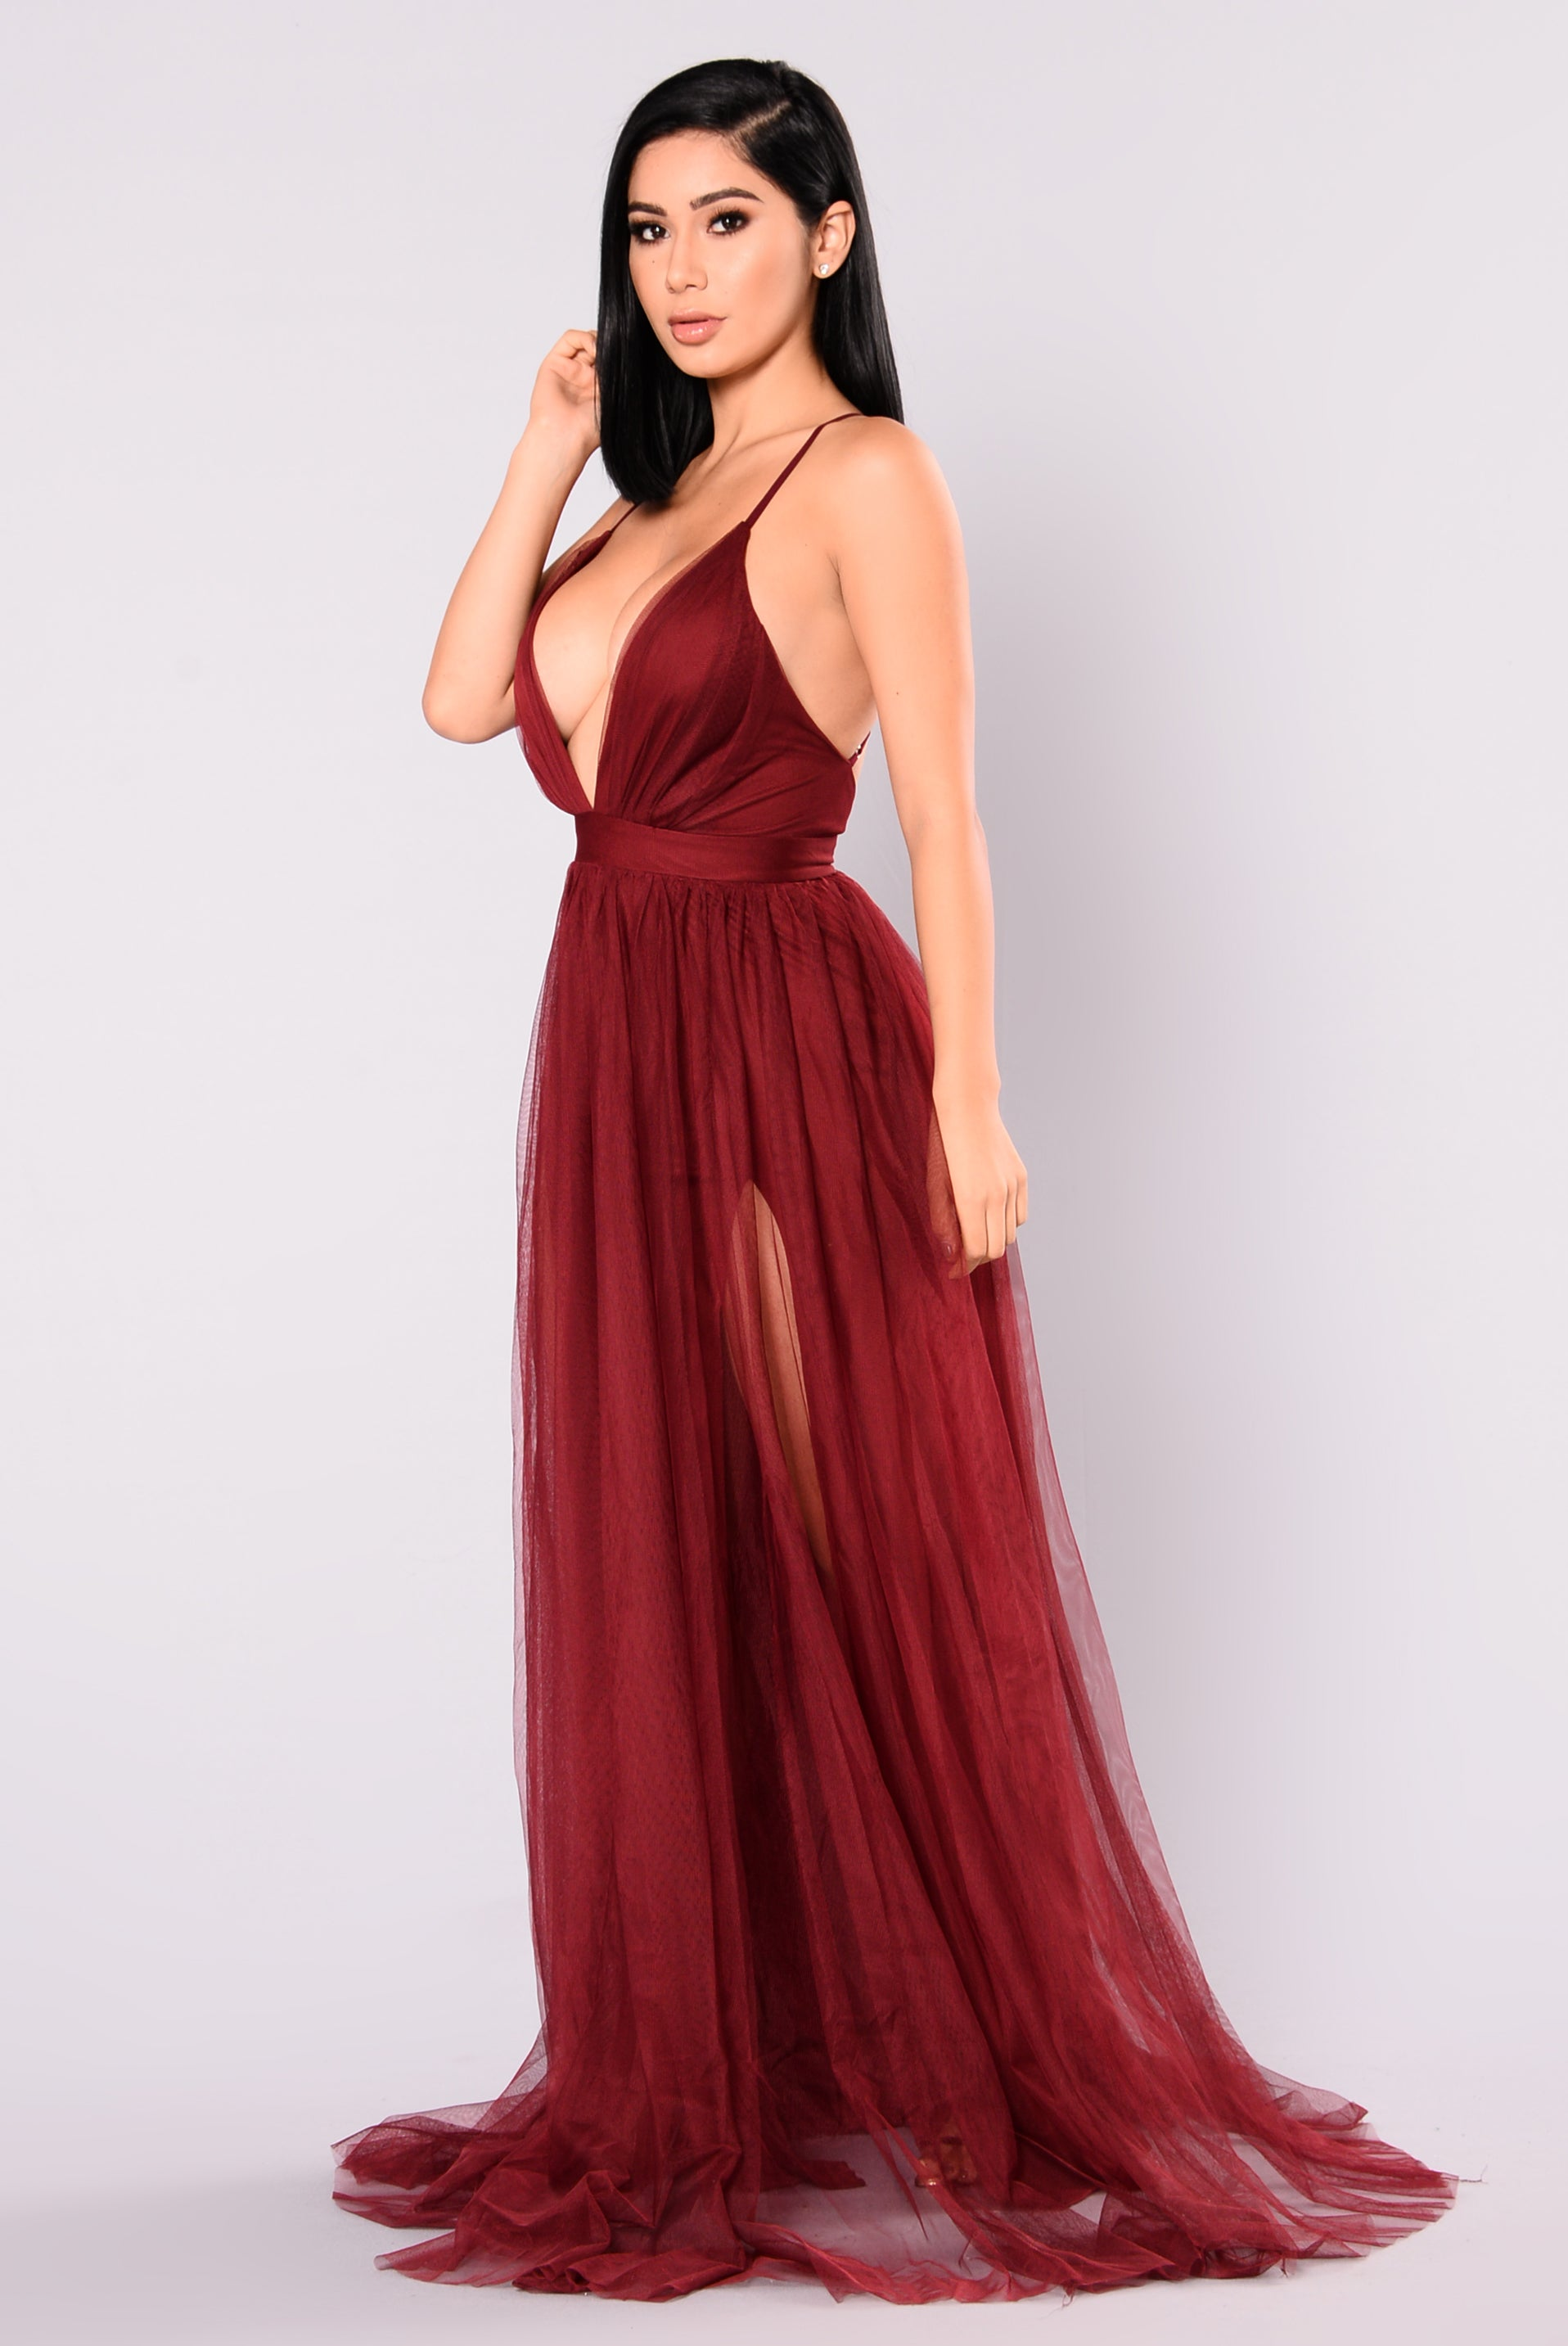 Fashion Dresses Style: On The Runway Maxi Dress